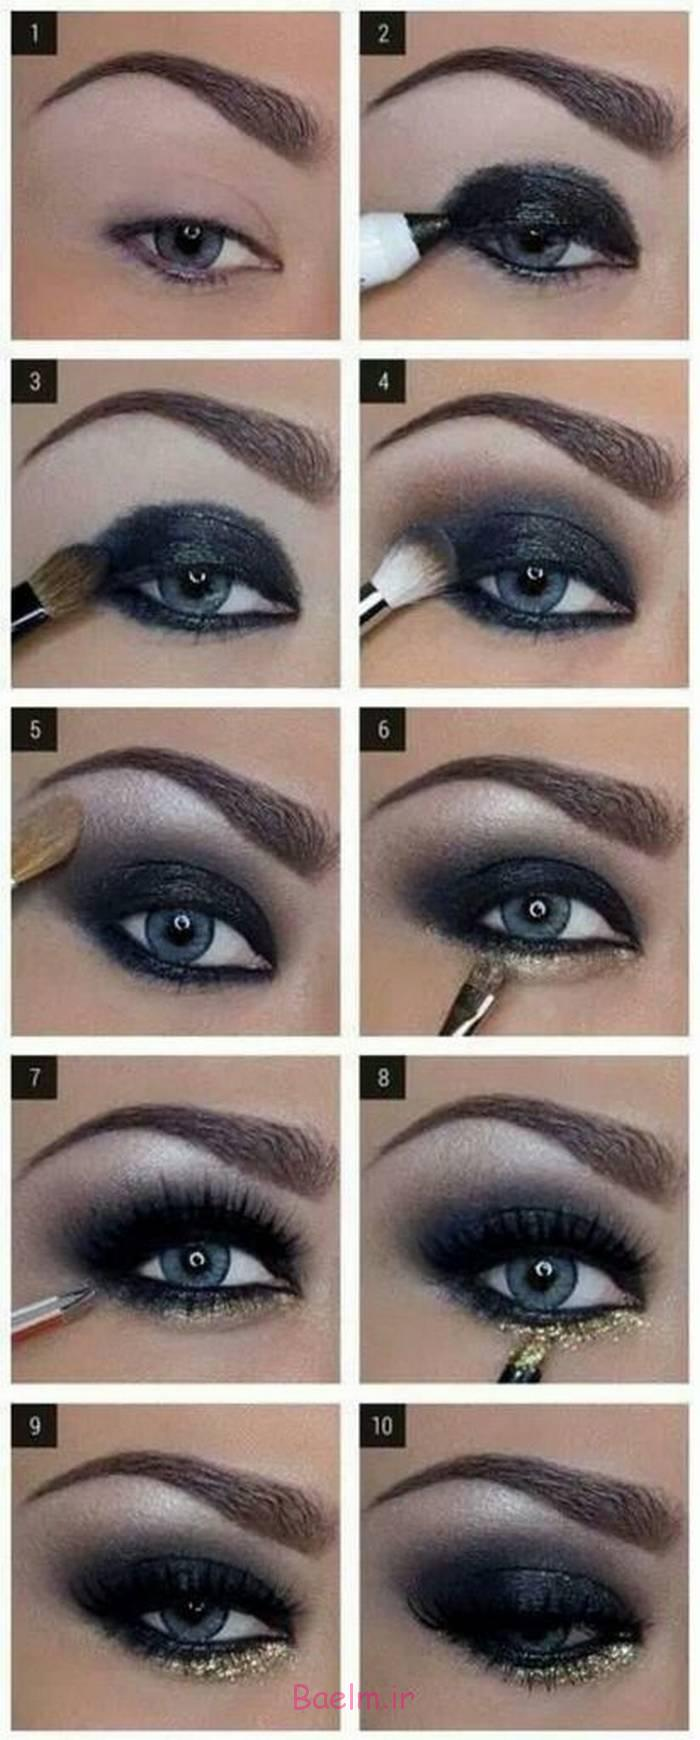 Top 20 Amazing Eye Makeup Tutorials You Must See 4 Top 20 Amazing Eye Makeup Tutorials You Must See